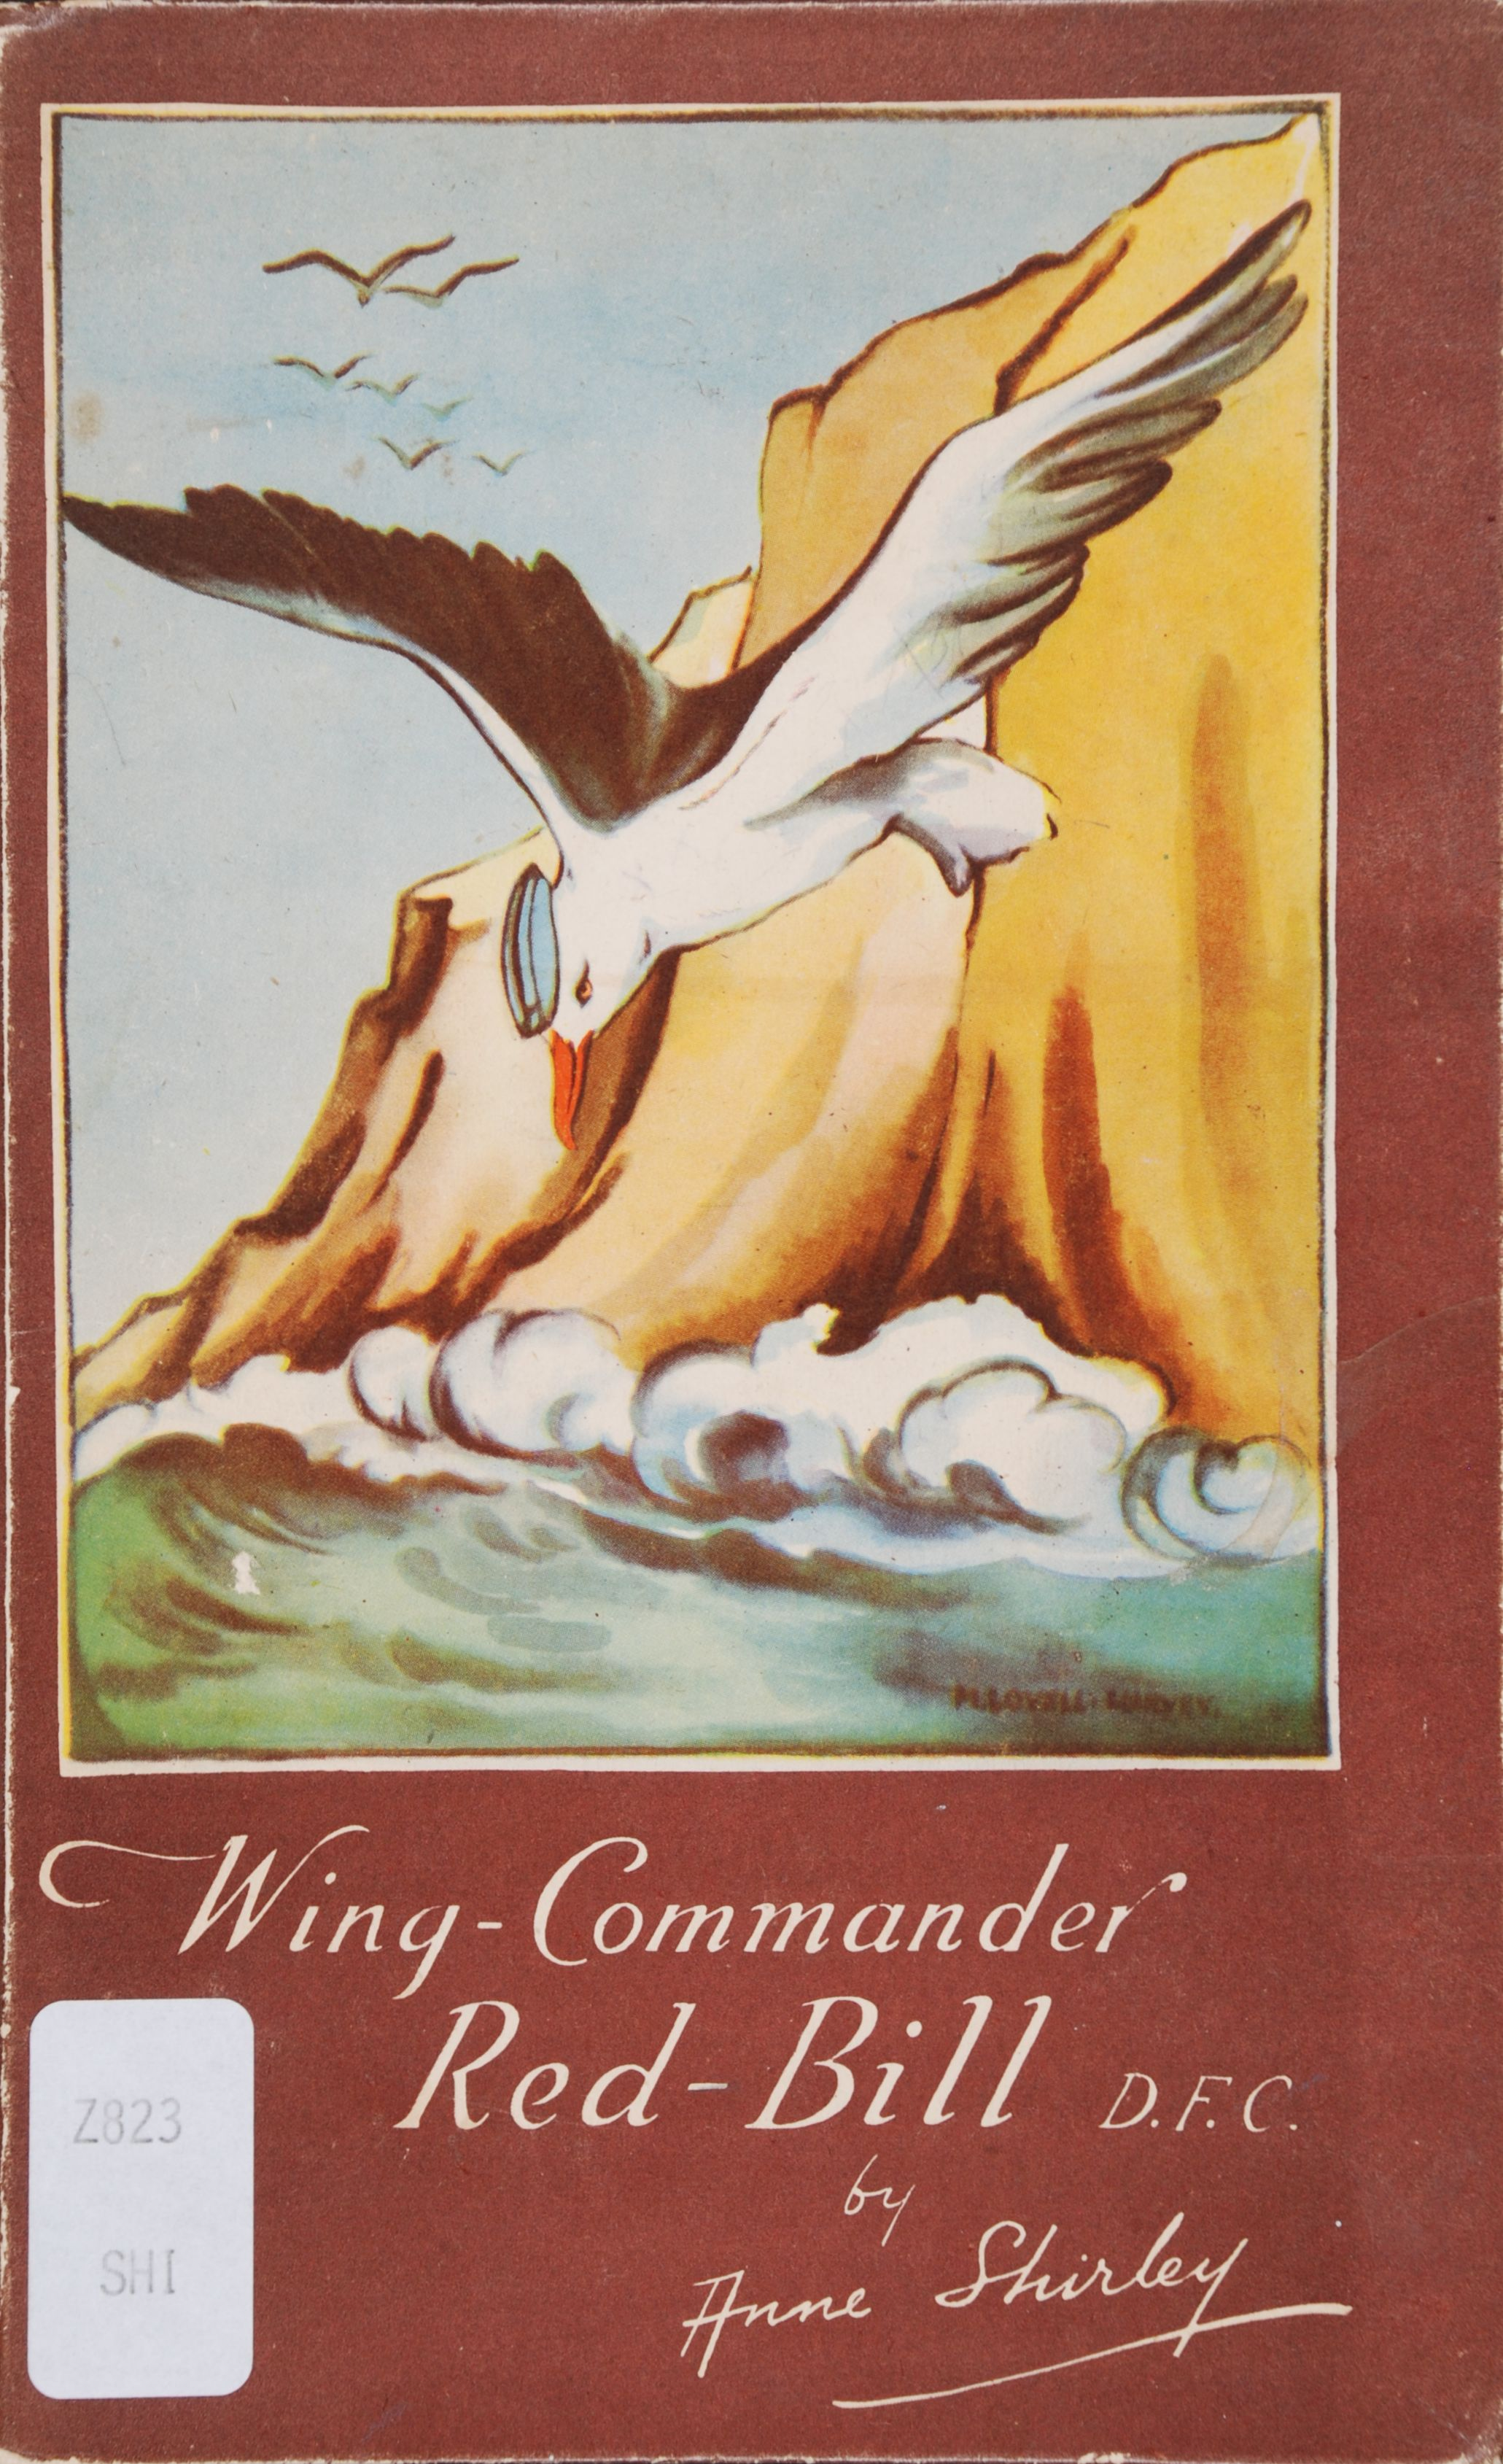 Noelle MacDonald. Wing-Commander Red-Bill, D.F.C.  / by Anne Shirley.Auckland, N.Z.: Oswald-Sealy, [1944].